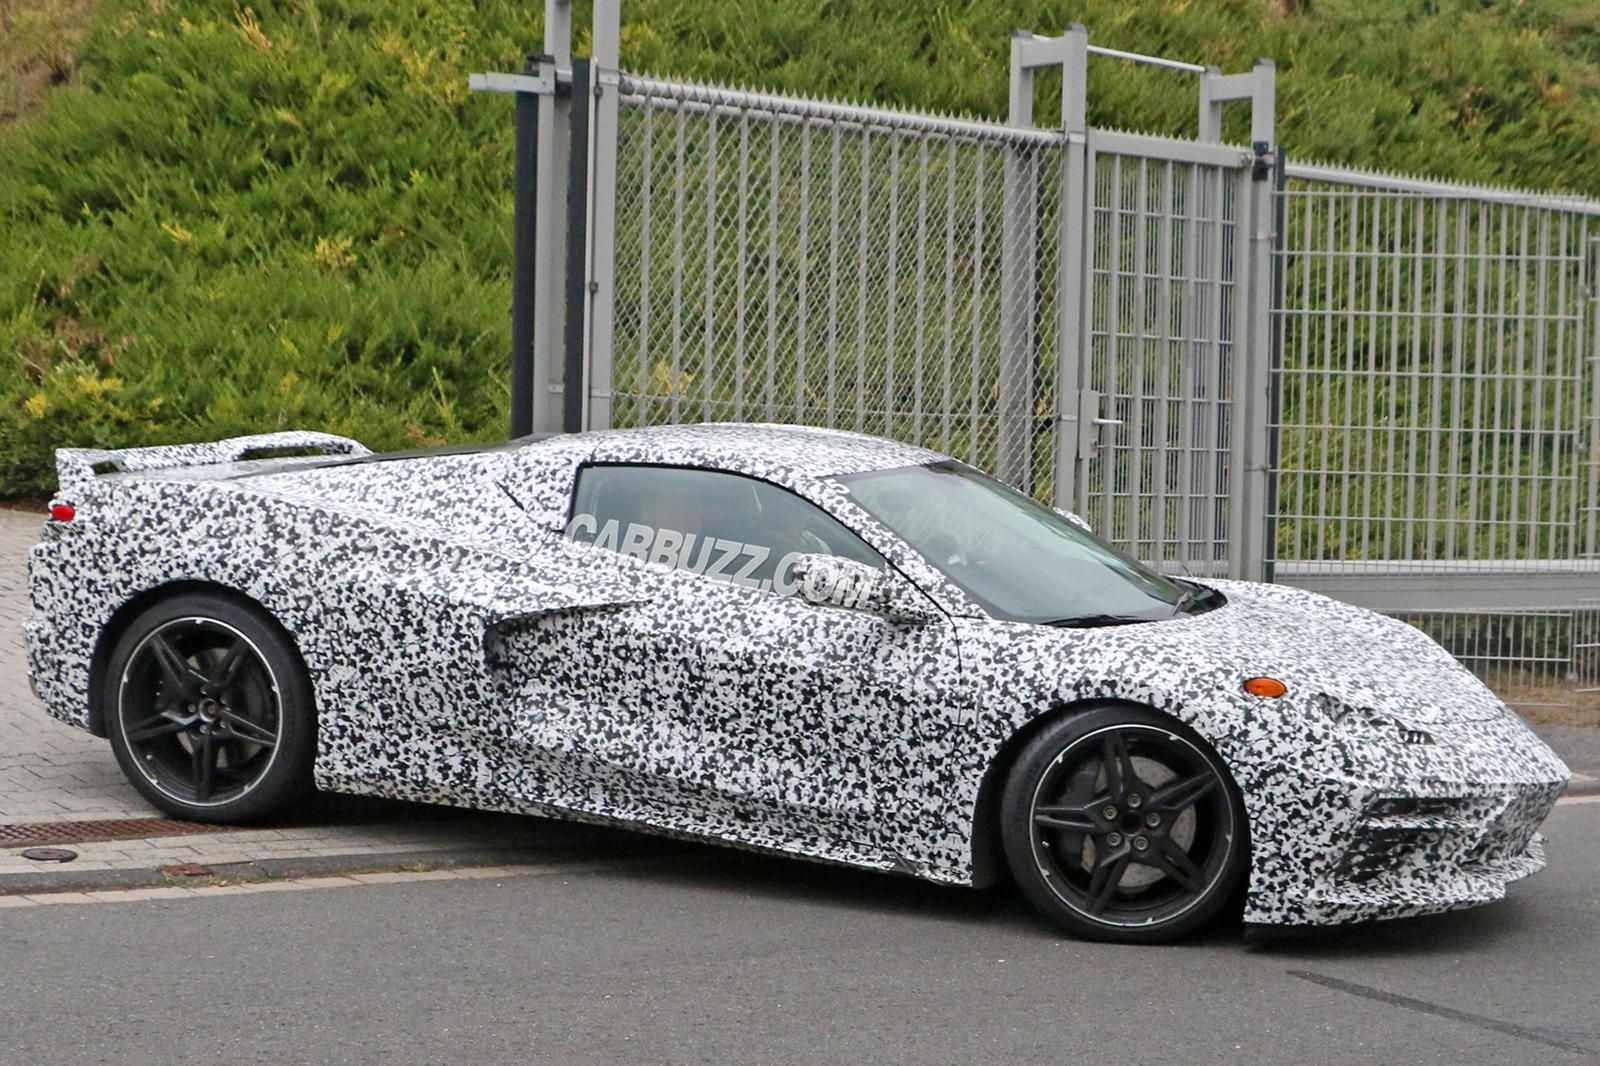 Insider Claims Corvette C8 Will Be Called 'Manta Ray